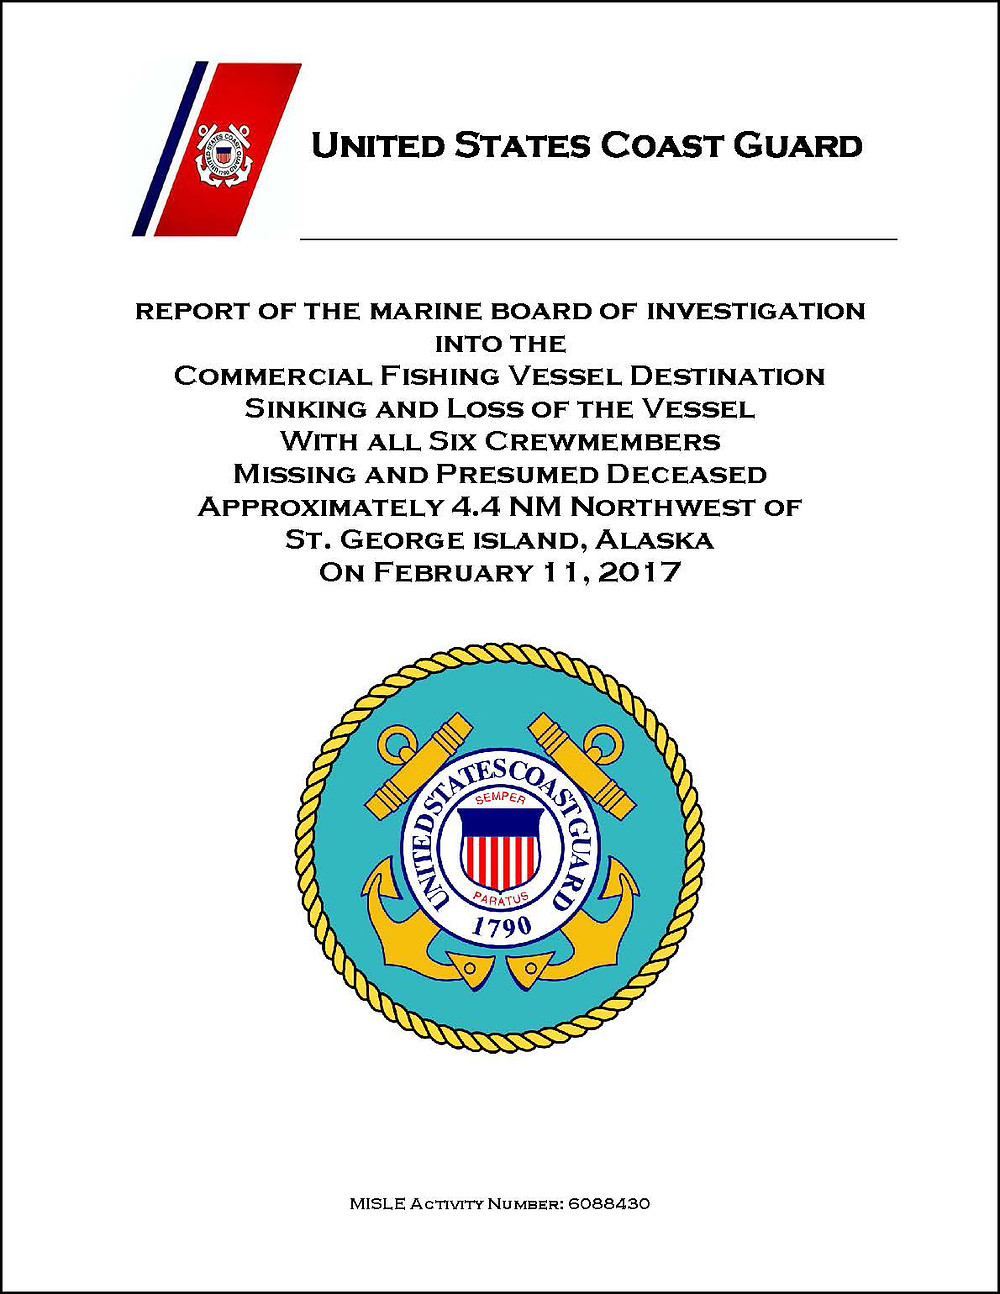 Report of the Marine Board of Investigation into the Commercial Fishing Vessel Destination Sinking